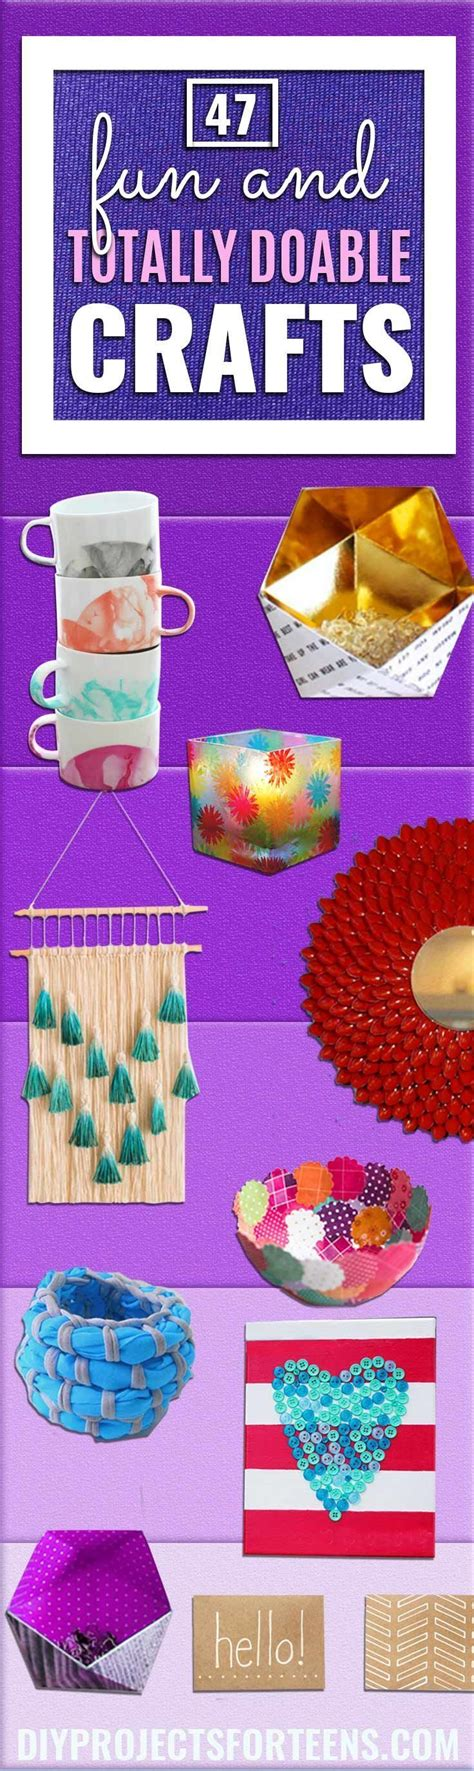 cool craft projects 1000 ideas about do it yourself crafts on